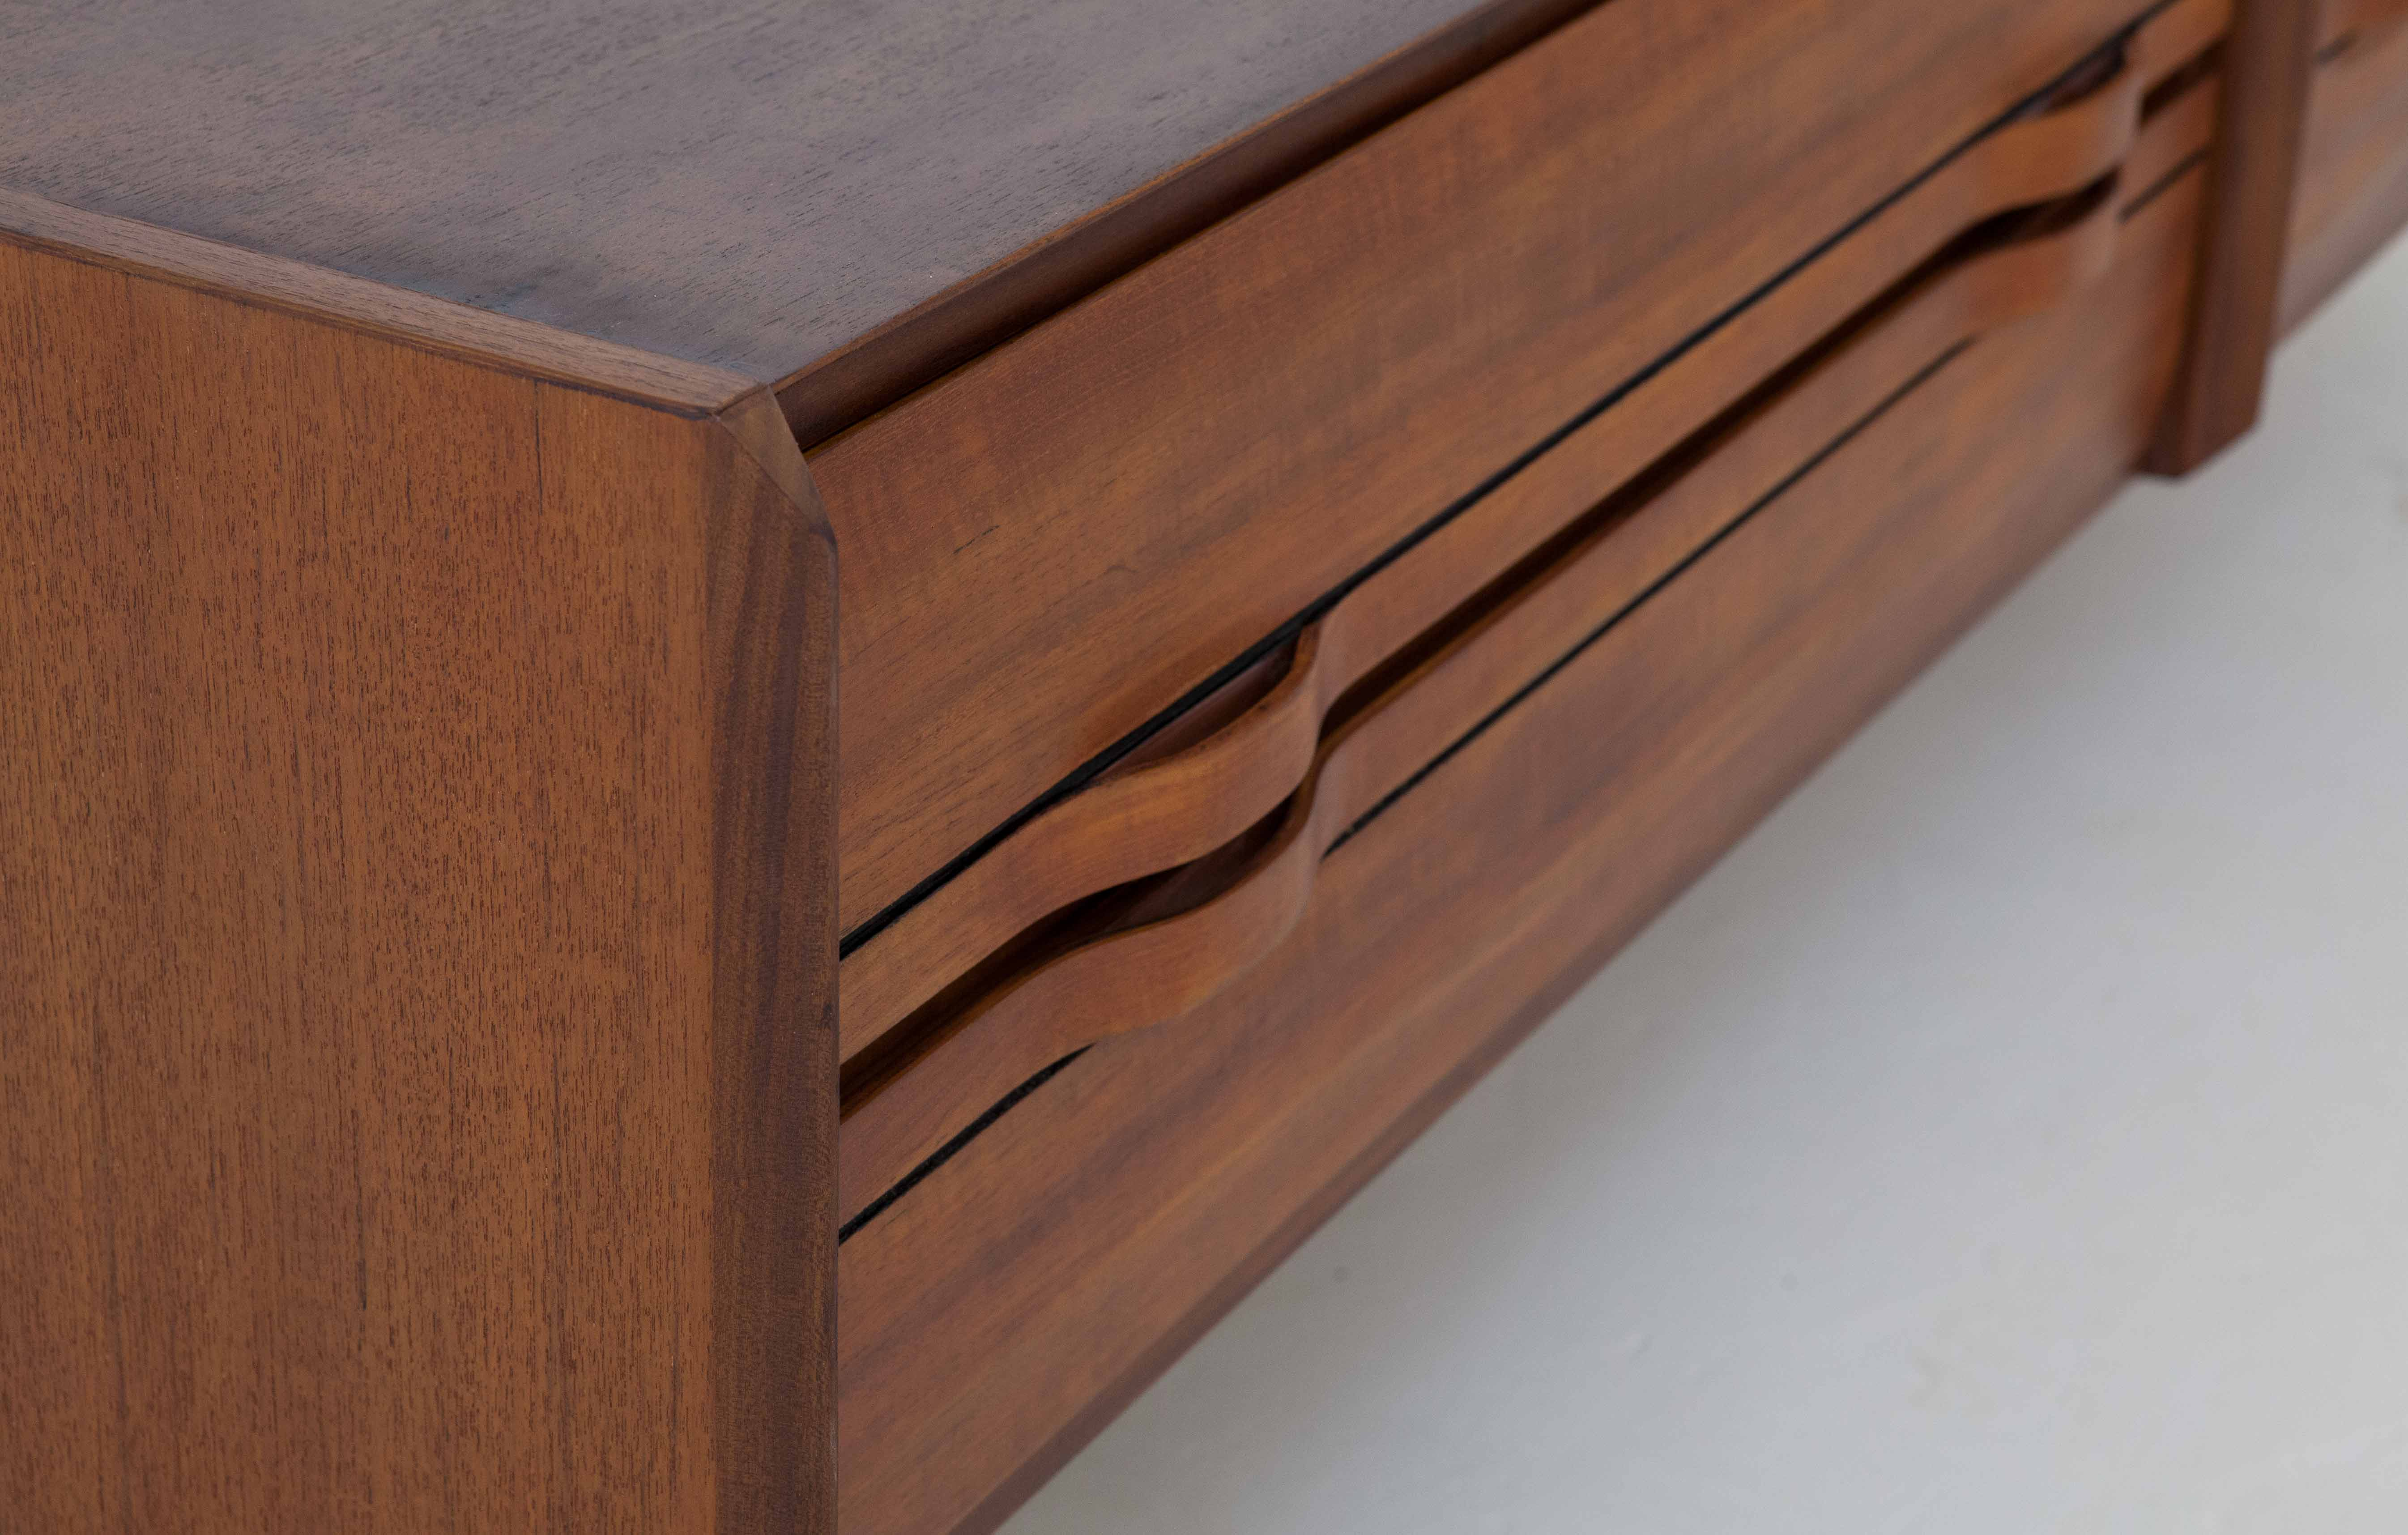 1960's-teak-sideboard-with-drawers-5-st116